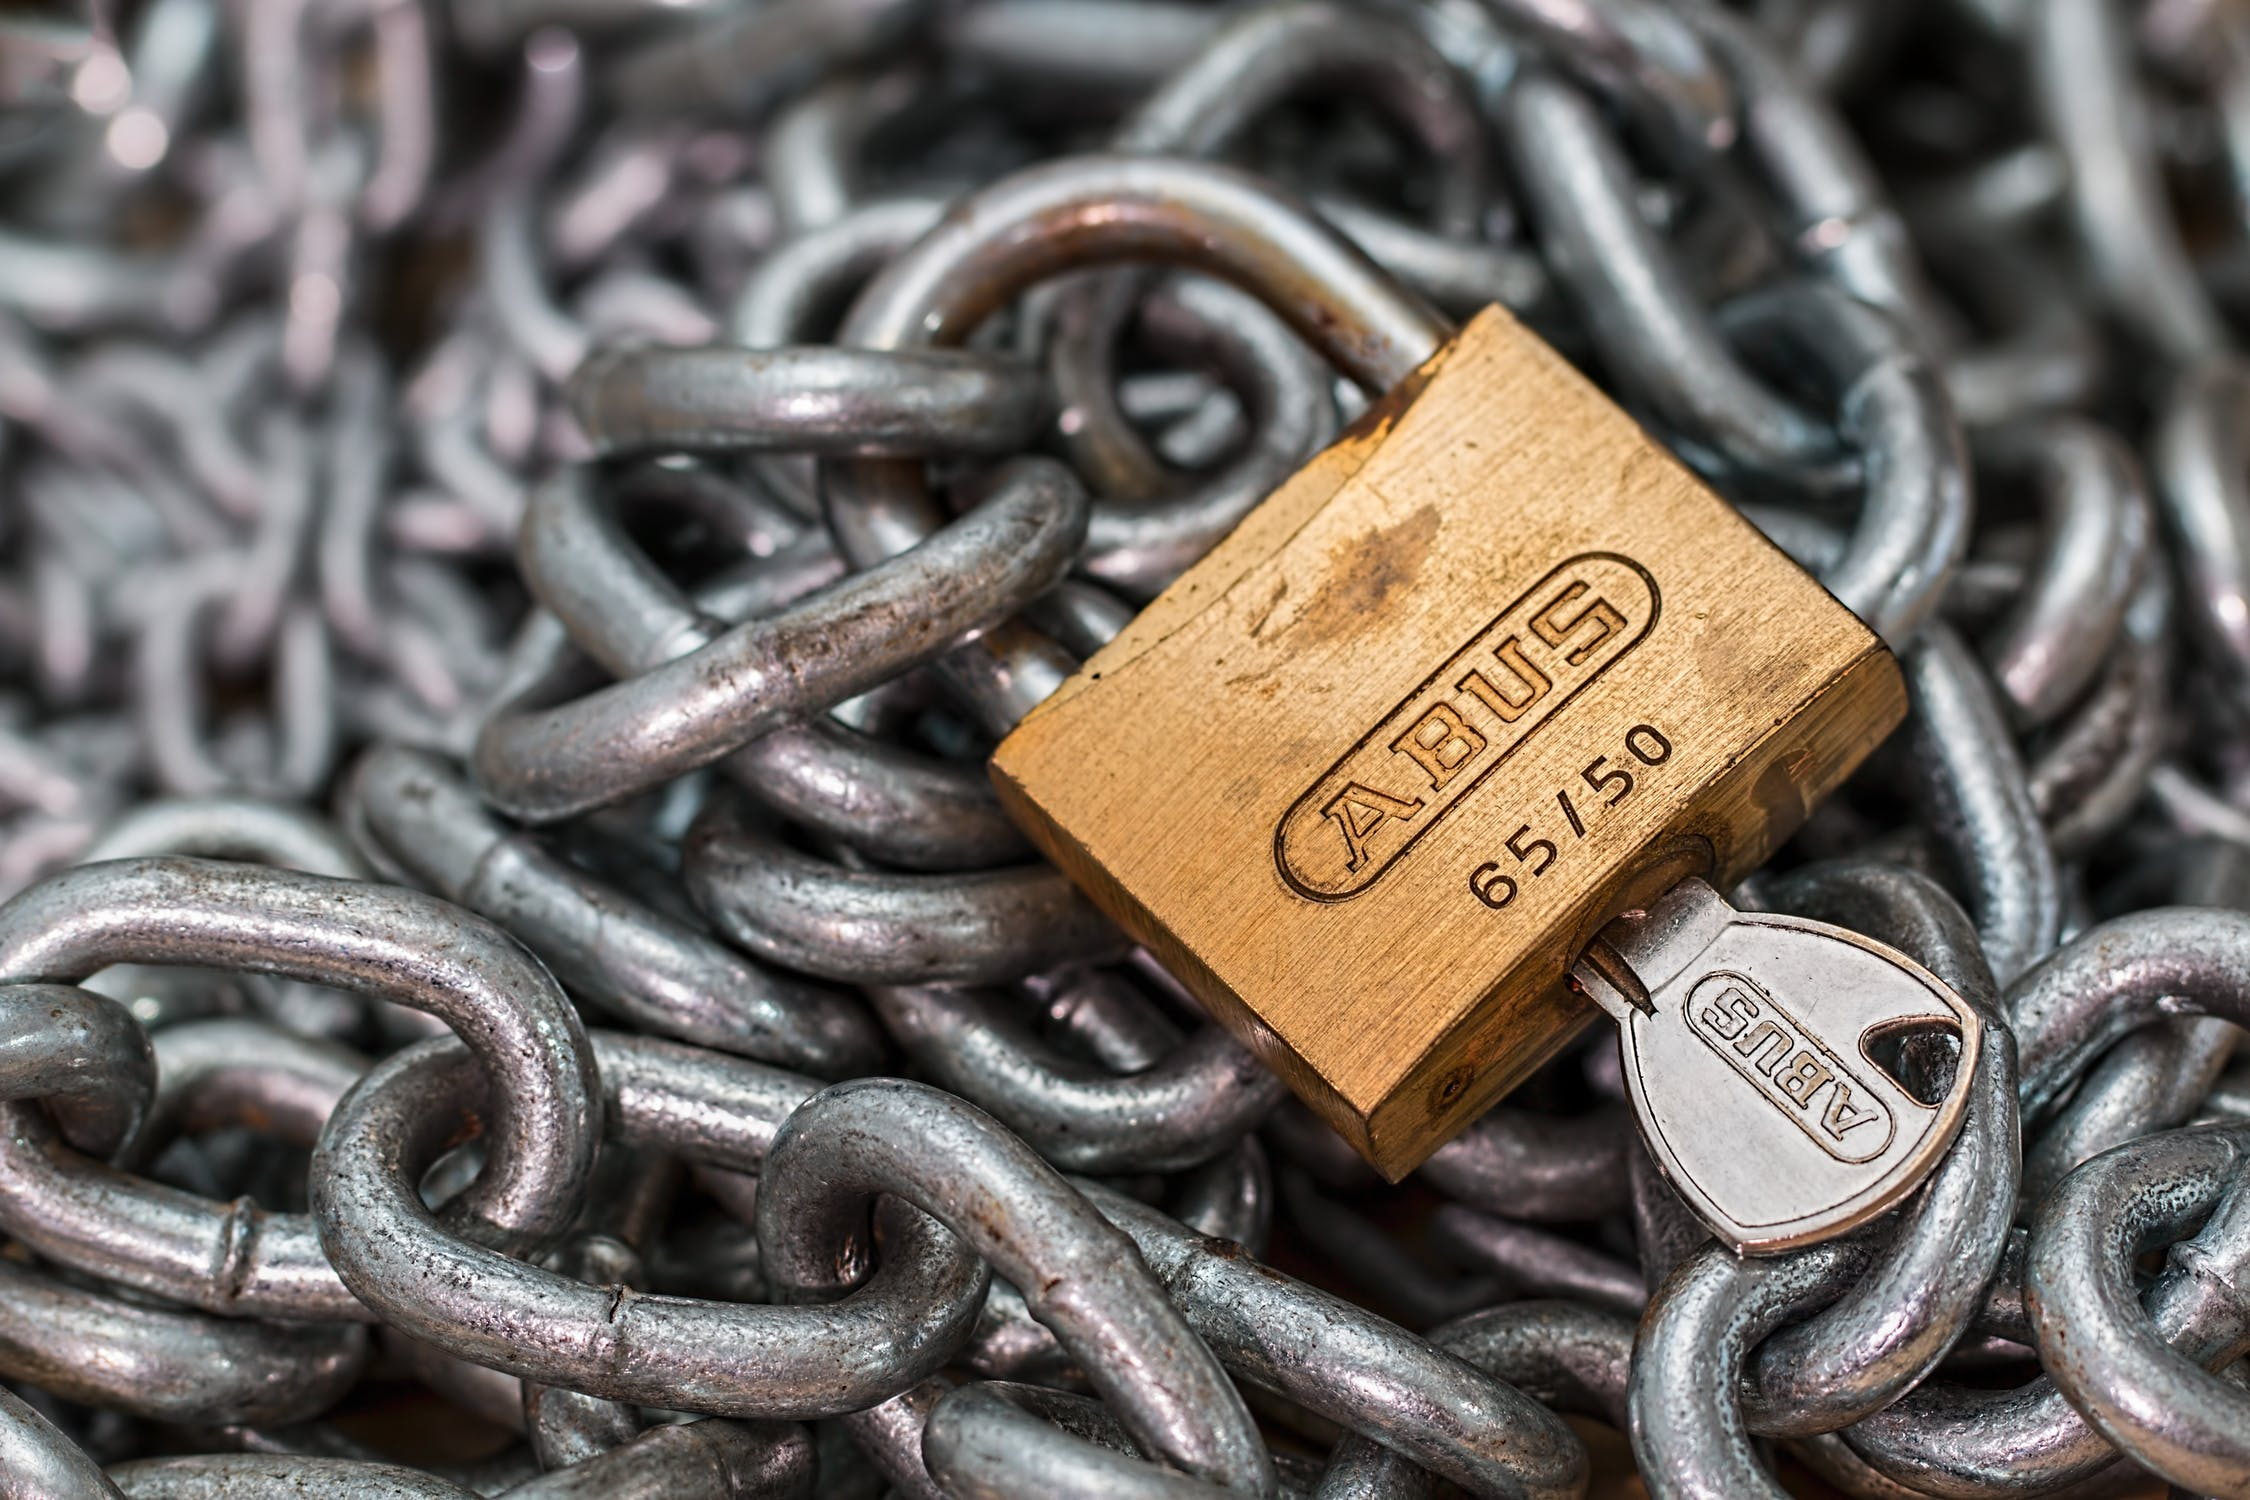 padlock-lock-chain-key-39624